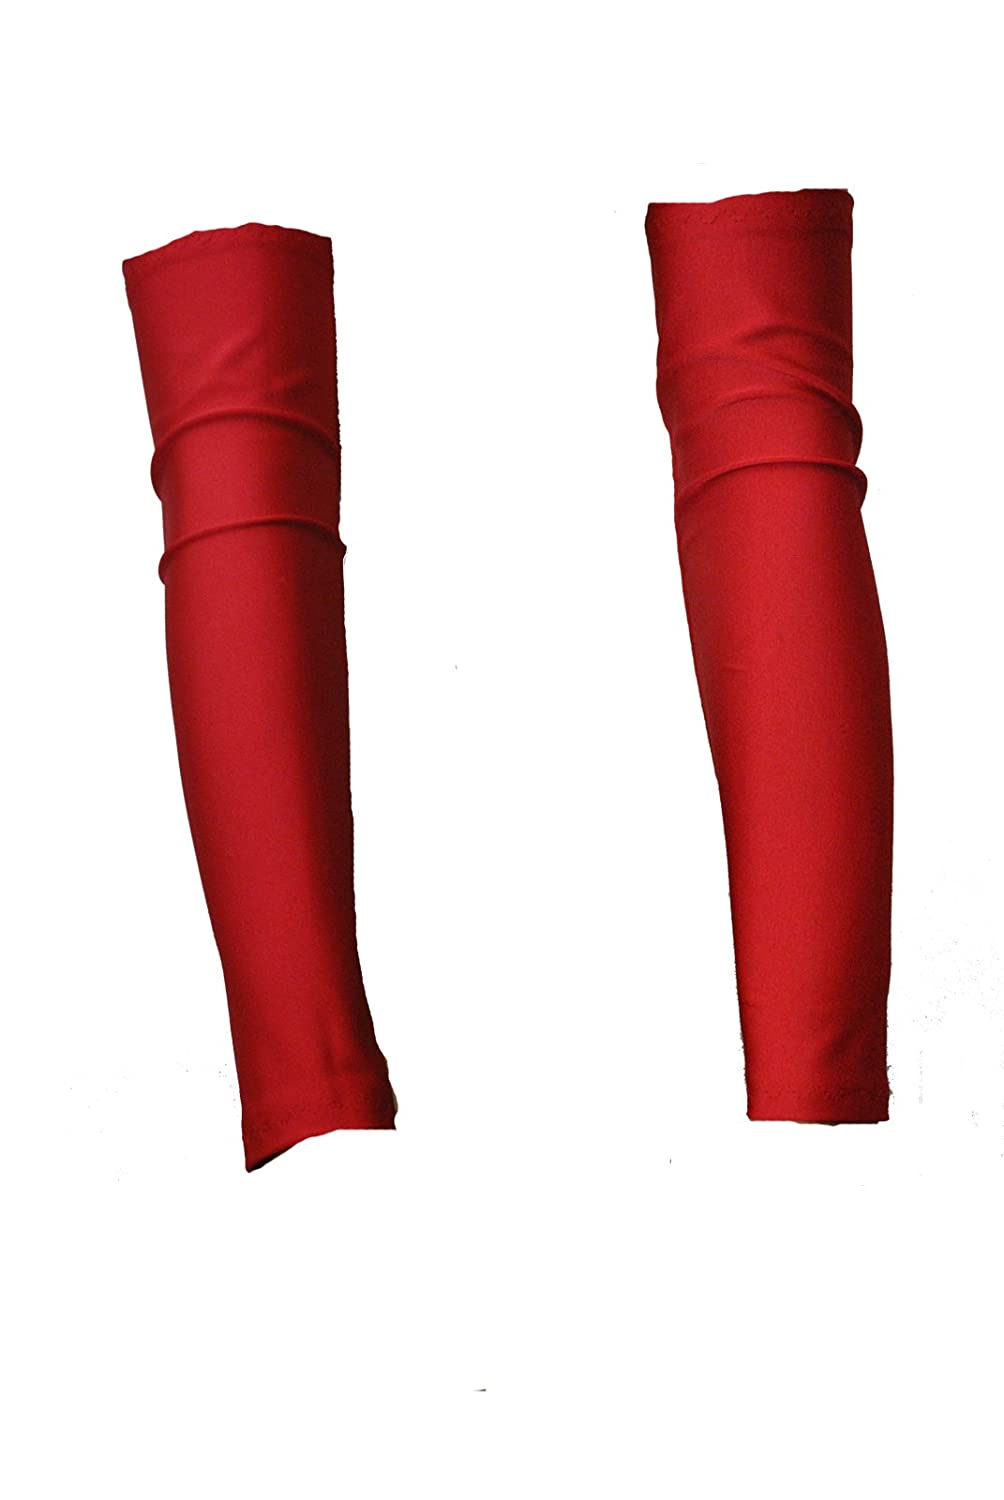 G29 - A Pair of Red Fantasystore Brand Lycra Arm Warmers Gauntlets FSA-G29